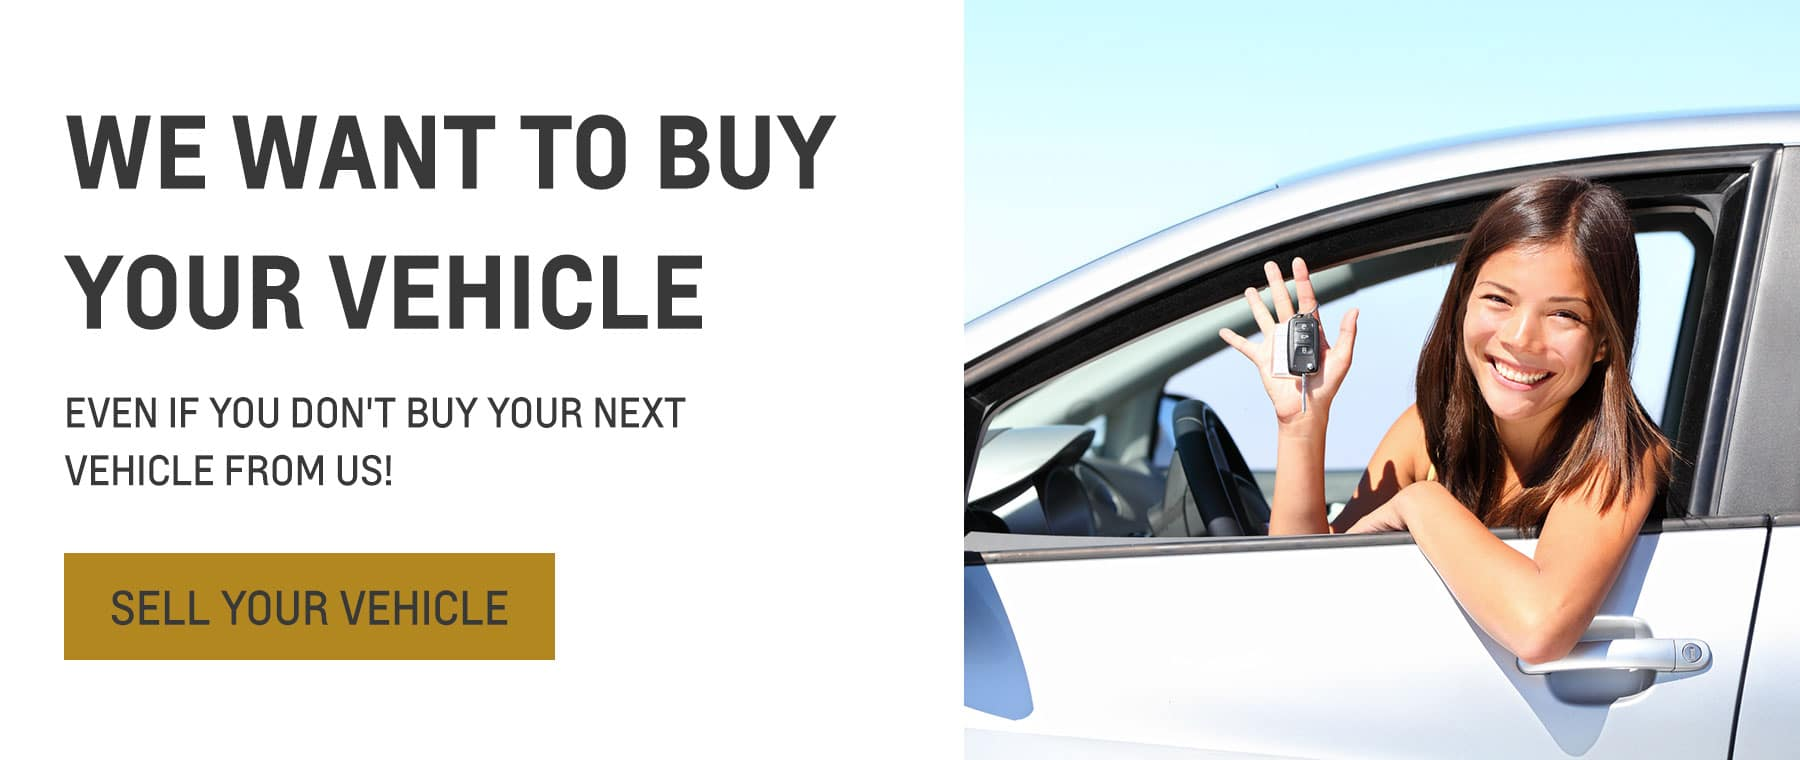 We want to buy your Vehicle. Even if you don't buy your next vehicle from us!